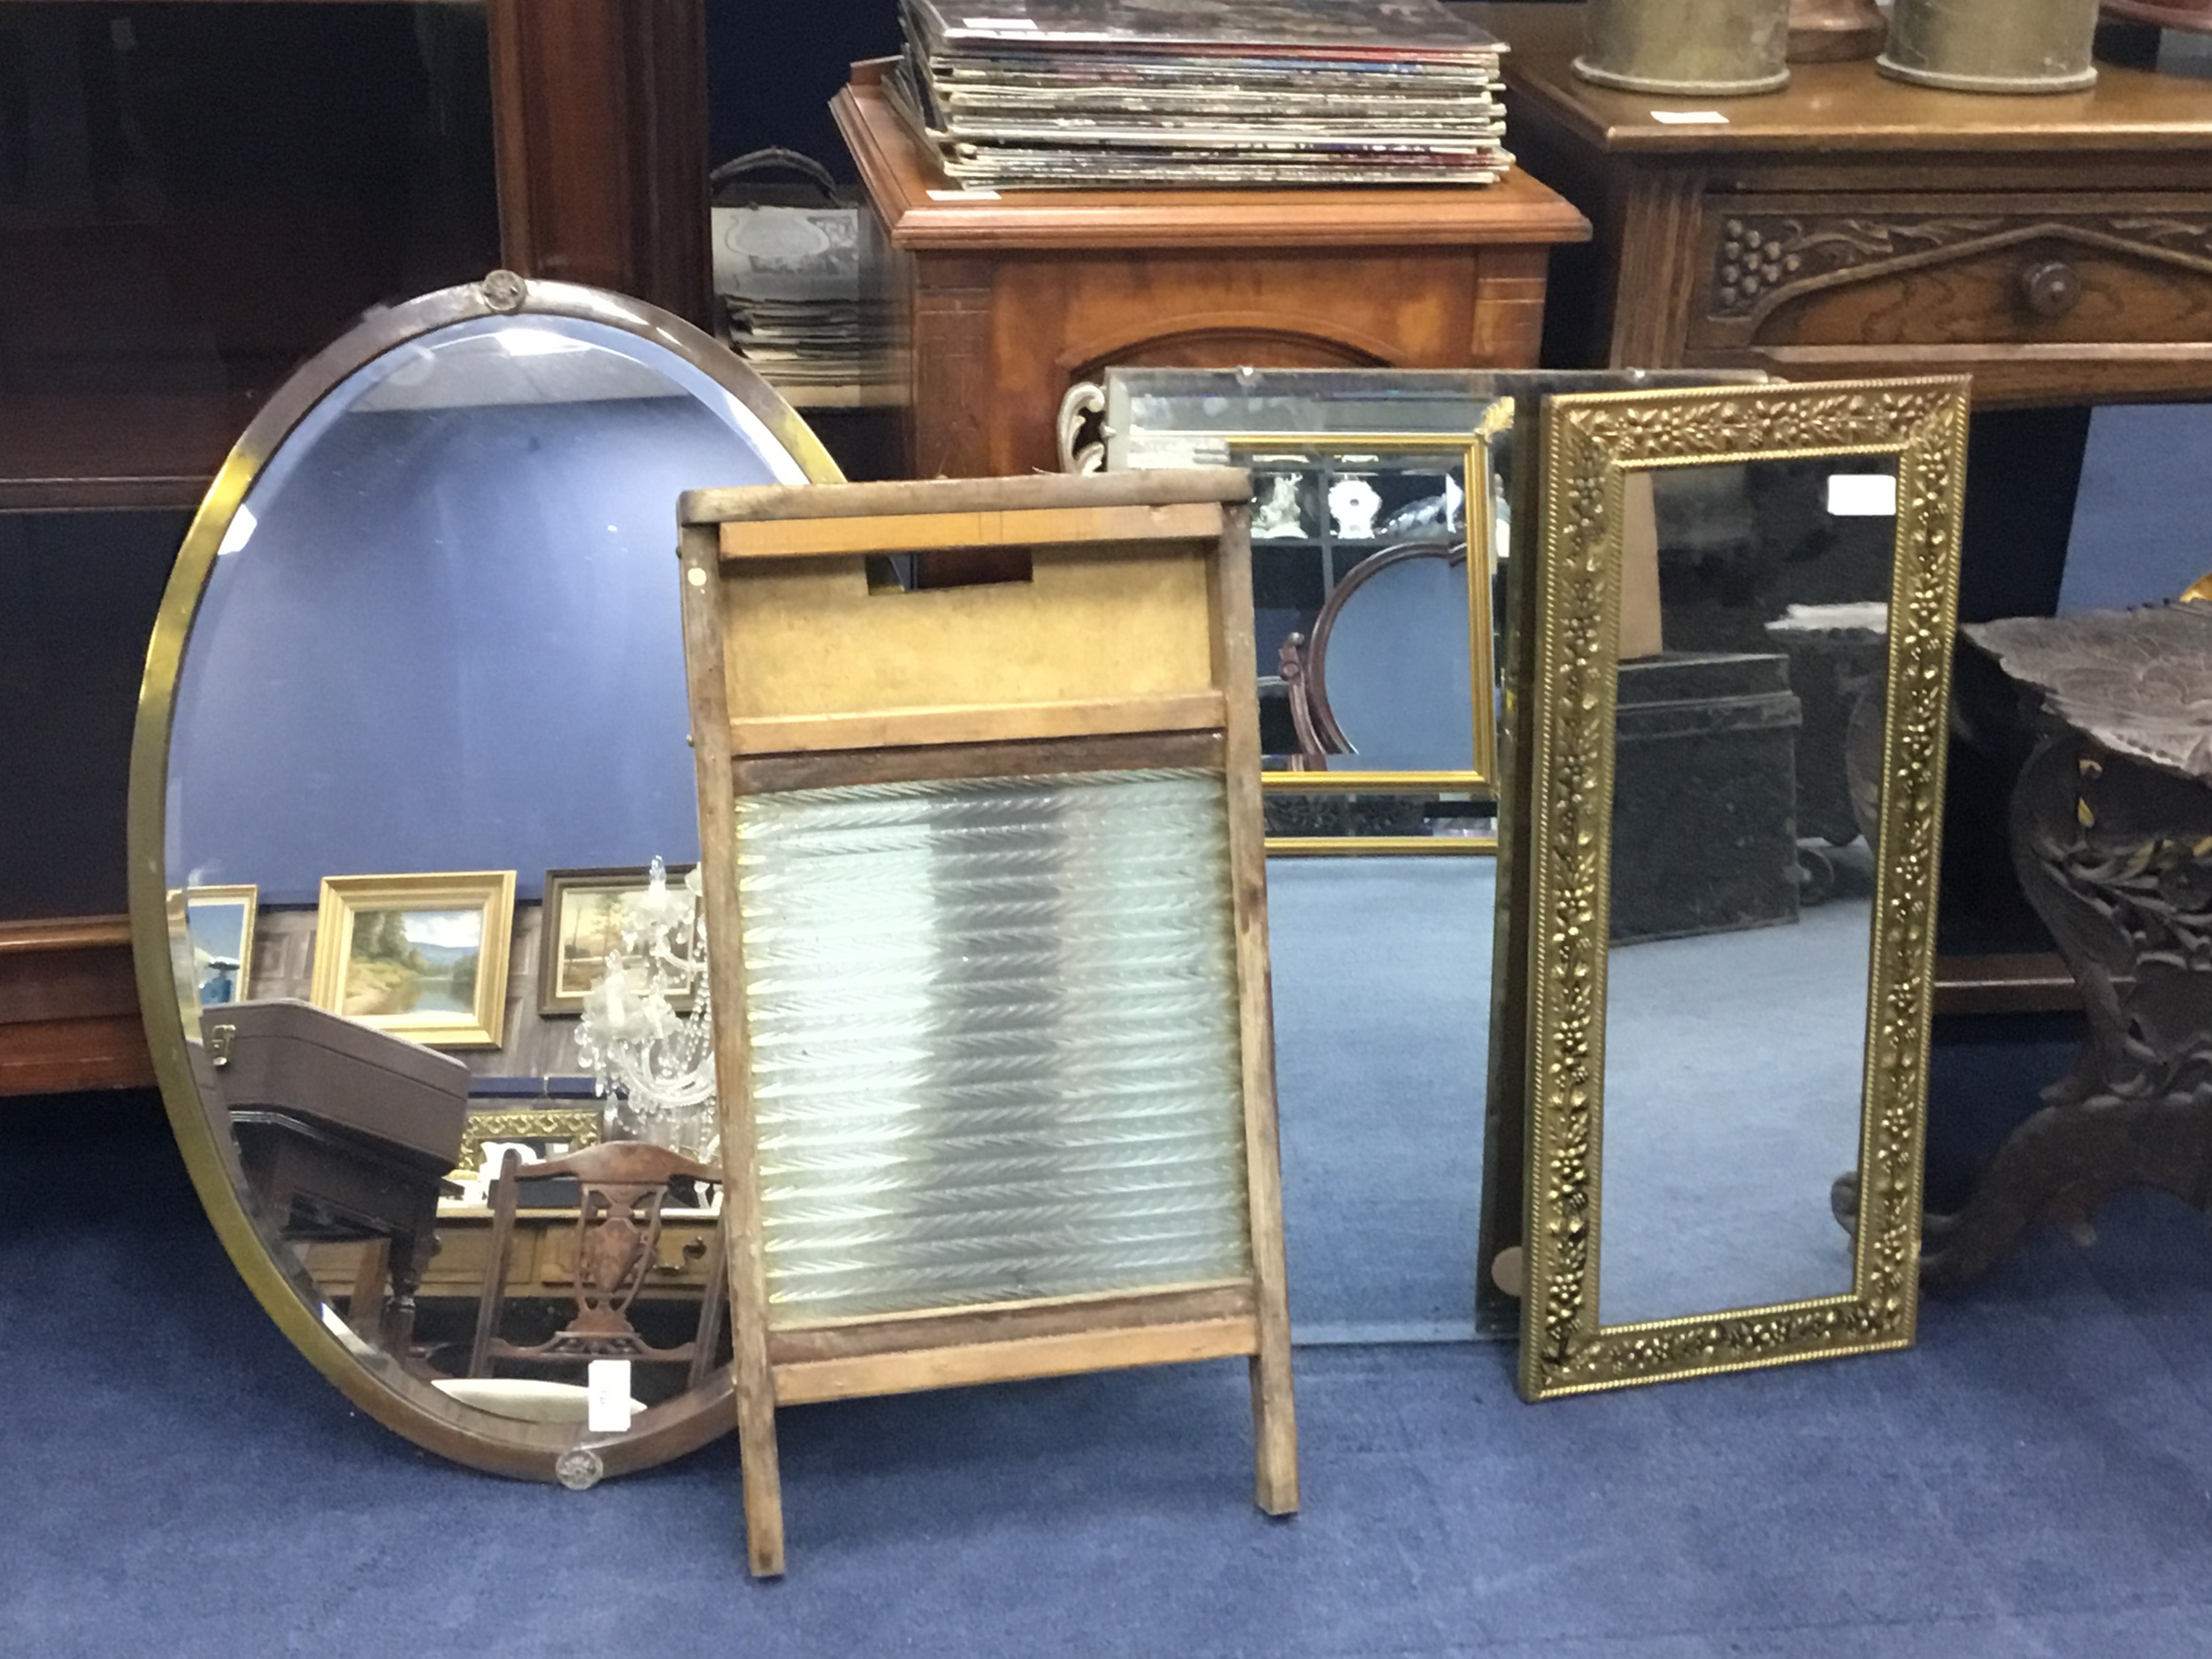 AN BRASS FRAMED BEVELLED WALL MIRROR, TWO OTHER MIRRORS AND A WASHBOARD